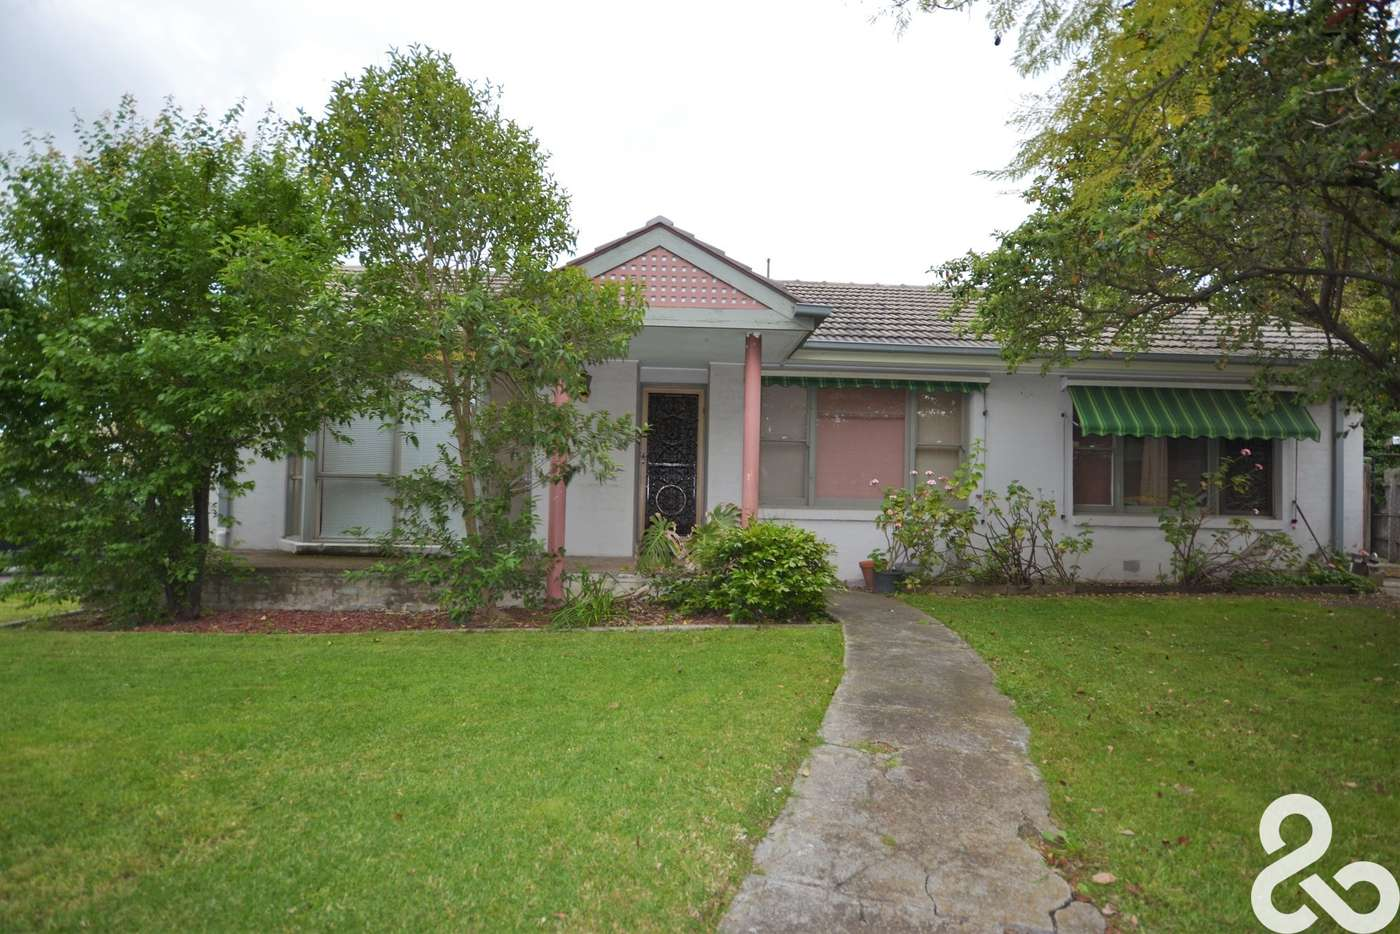 Main view of Homely house listing, 118 Bruce Street, Preston VIC 3072